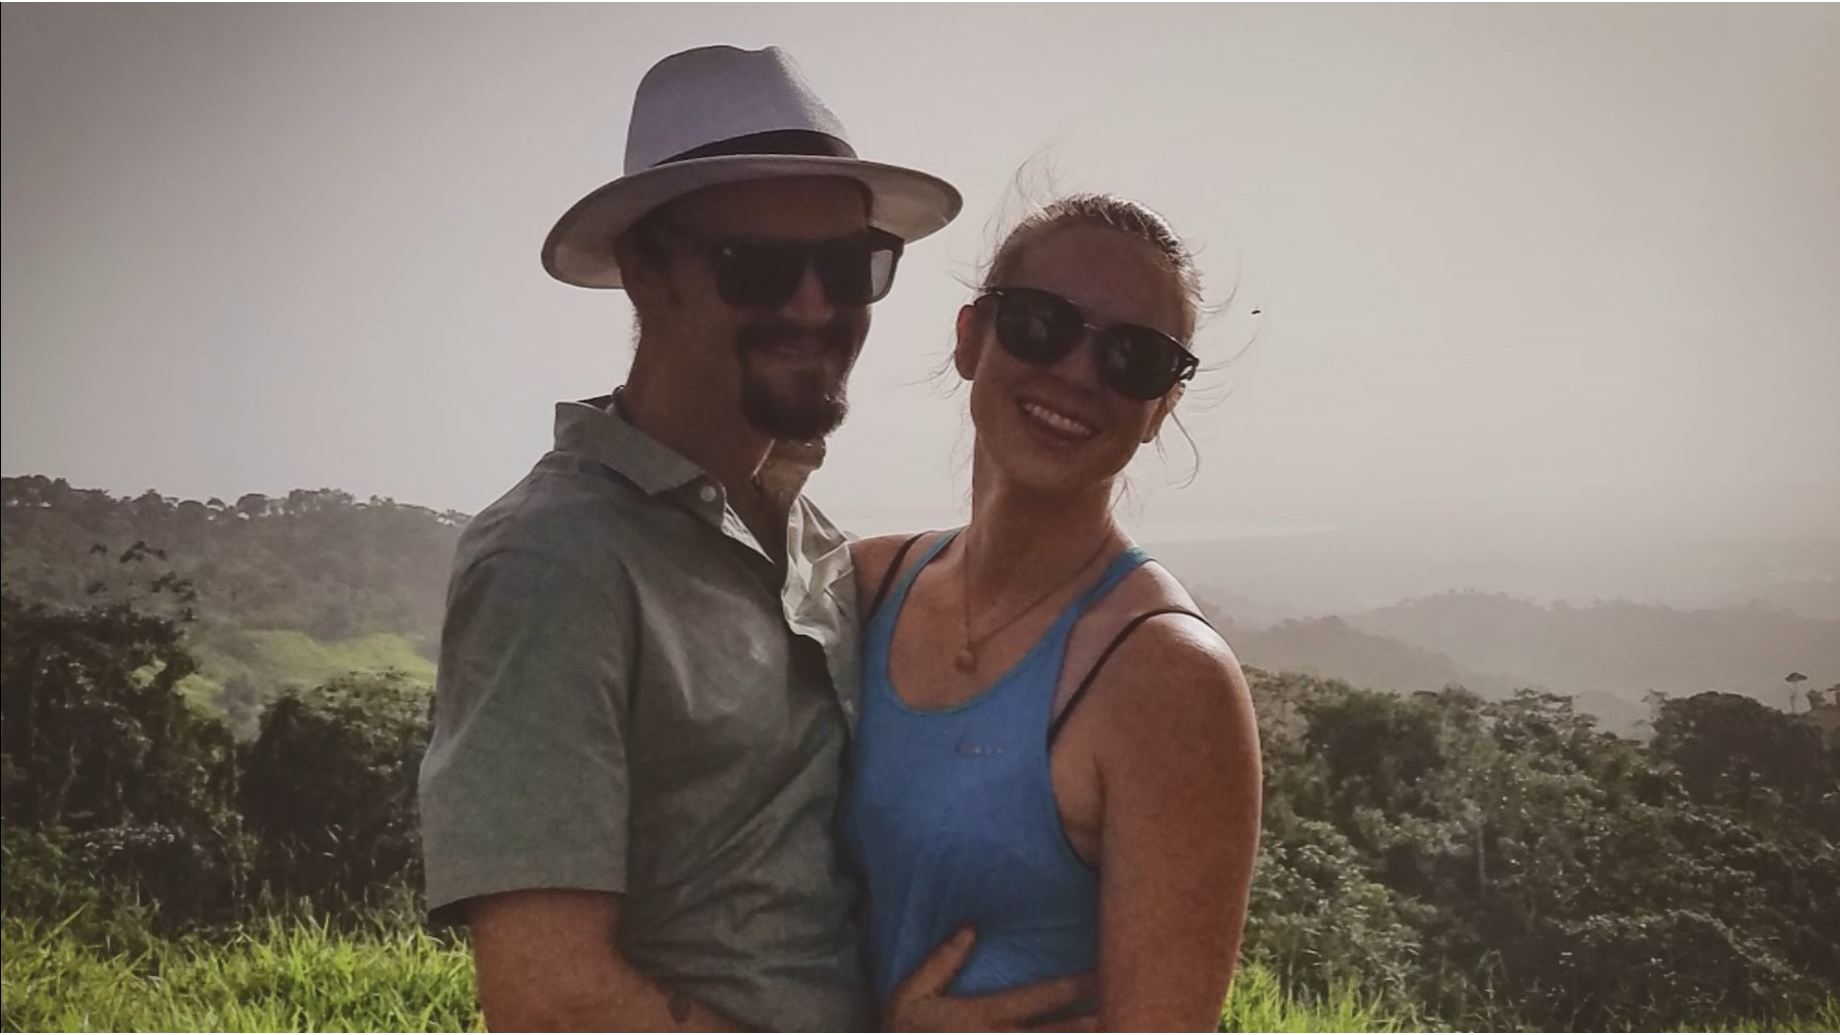 Couple says they were sickened at same Dominican Republic resort where 3 died